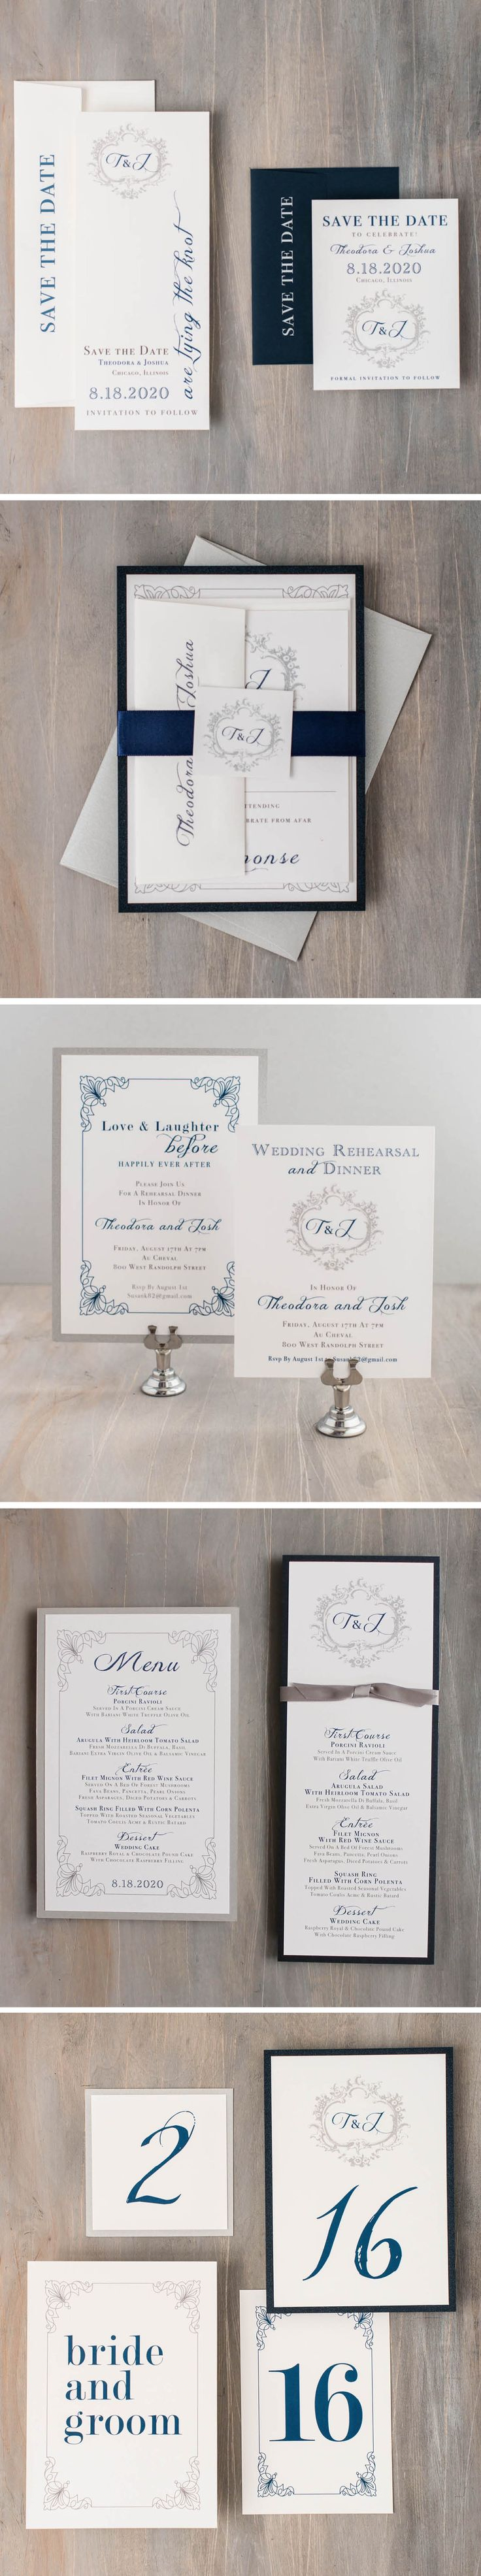 Fully customize these wedding invitations to match your wedding colors & style. Explore more at www.beaconln.com.